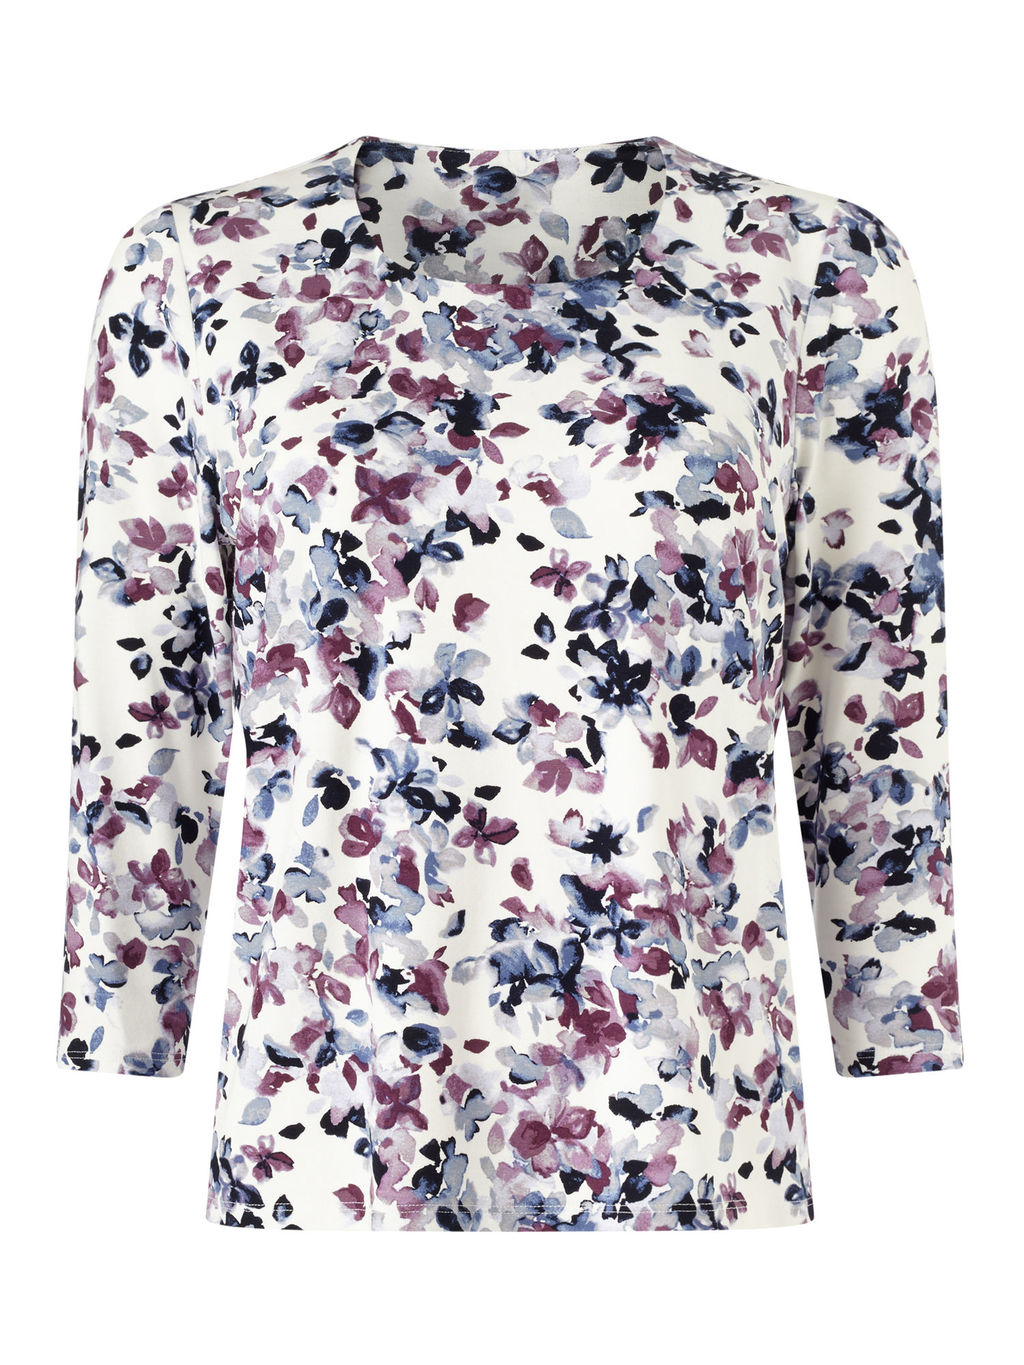 Mini Watercolour Floral Top - neckline: round neck; predominant colour: ivory/cream; secondary colour: purple; occasions: casual, creative work; length: standard; style: top; fibres: viscose/rayon - stretch; fit: body skimming; sleeve length: 3/4 length; sleeve style: standard; pattern type: fabric; pattern size: standard; pattern: florals; texture group: jersey - stretchy/drapey; multicoloured: multicoloured; season: s/s 2016